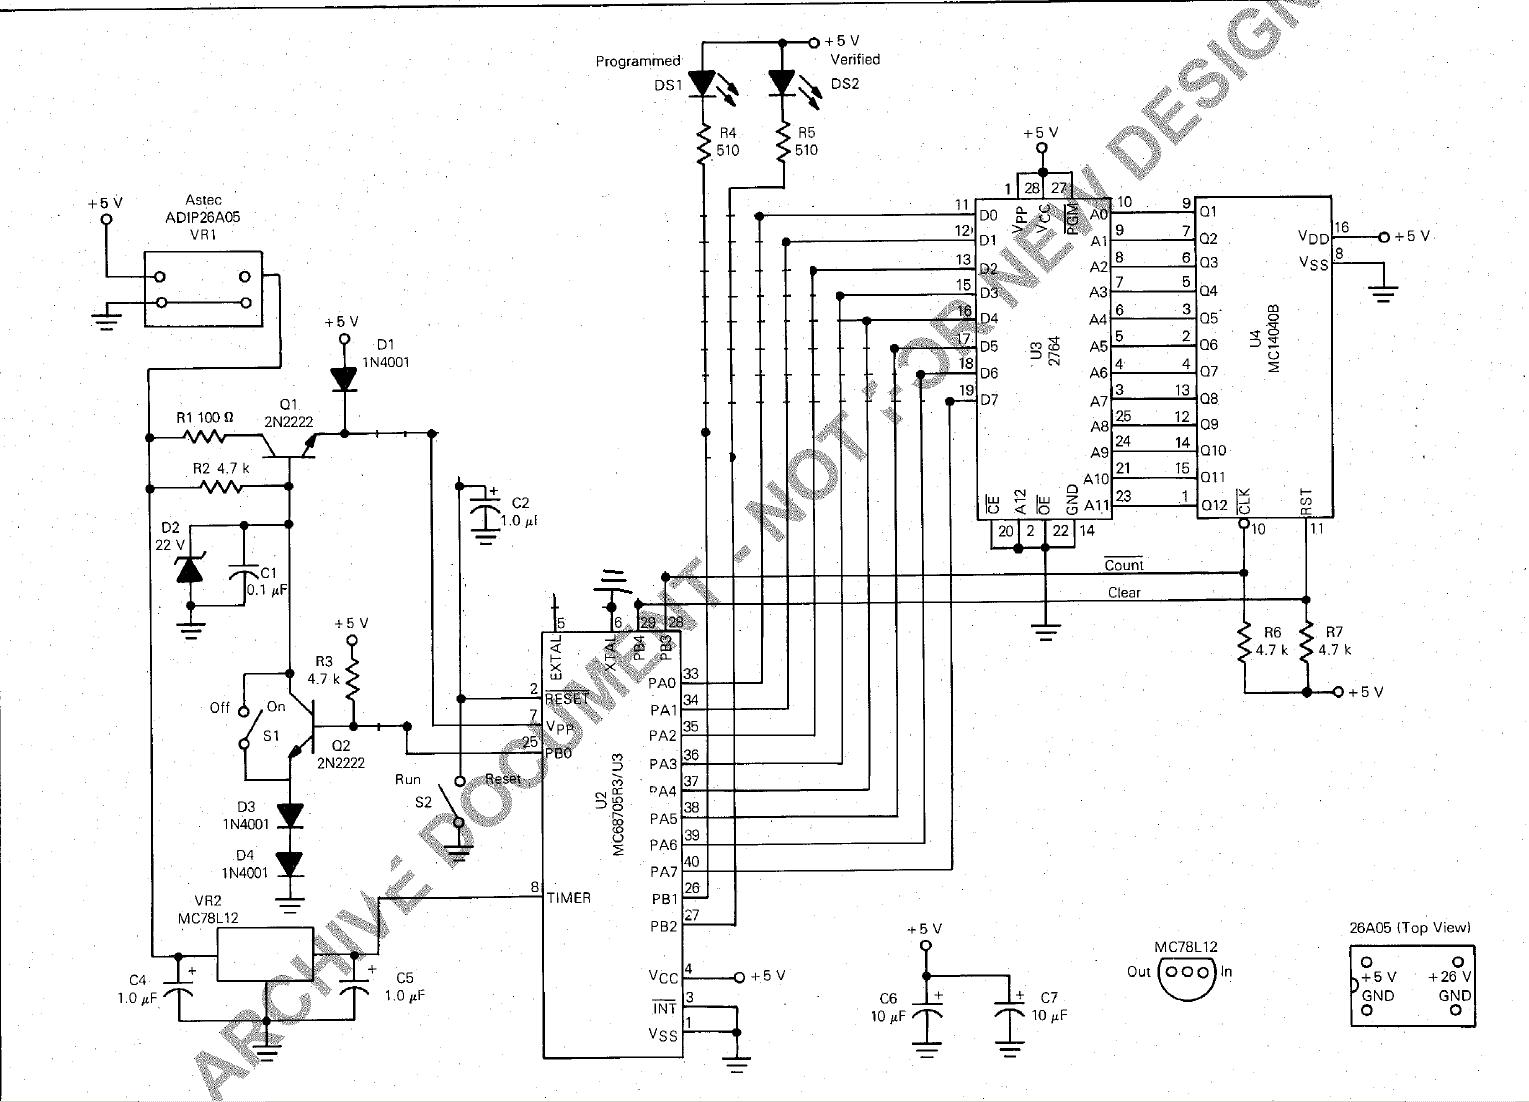 MC68705 Programmer Circuit - schematic